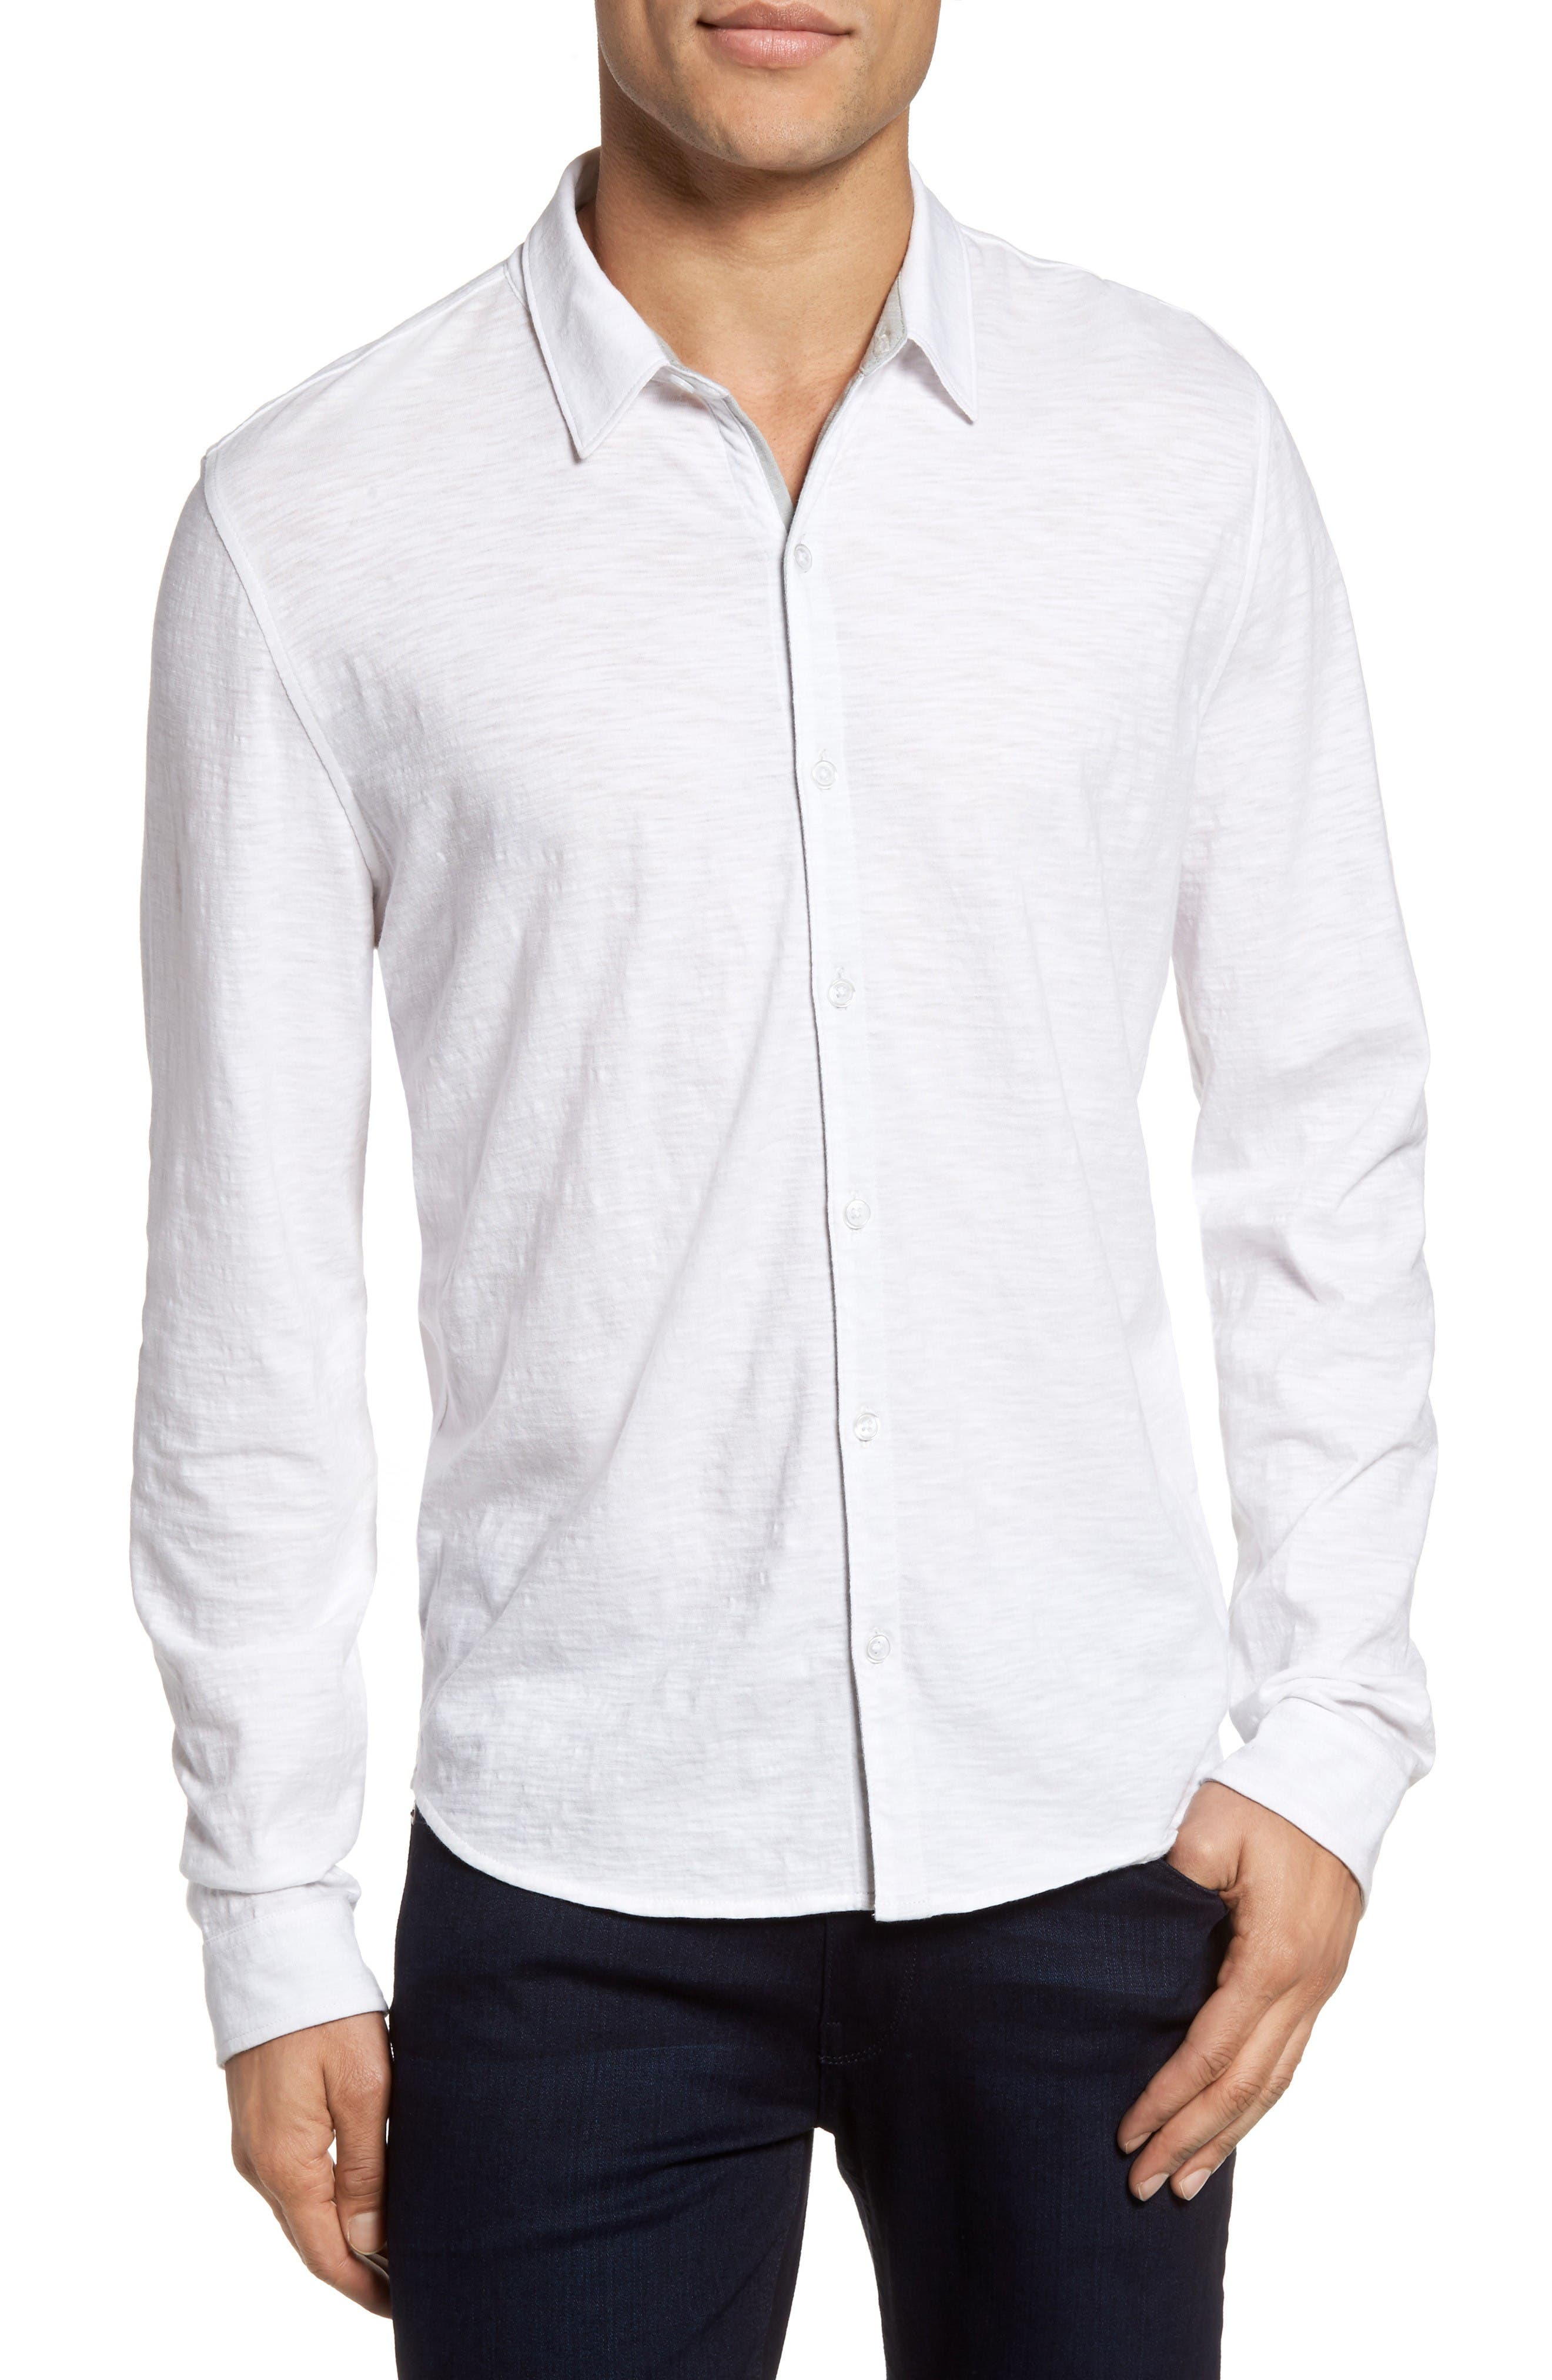 Alternate Image 1 Selected - Zachary Prell Camara Trim Fit Knit Sport Shirt